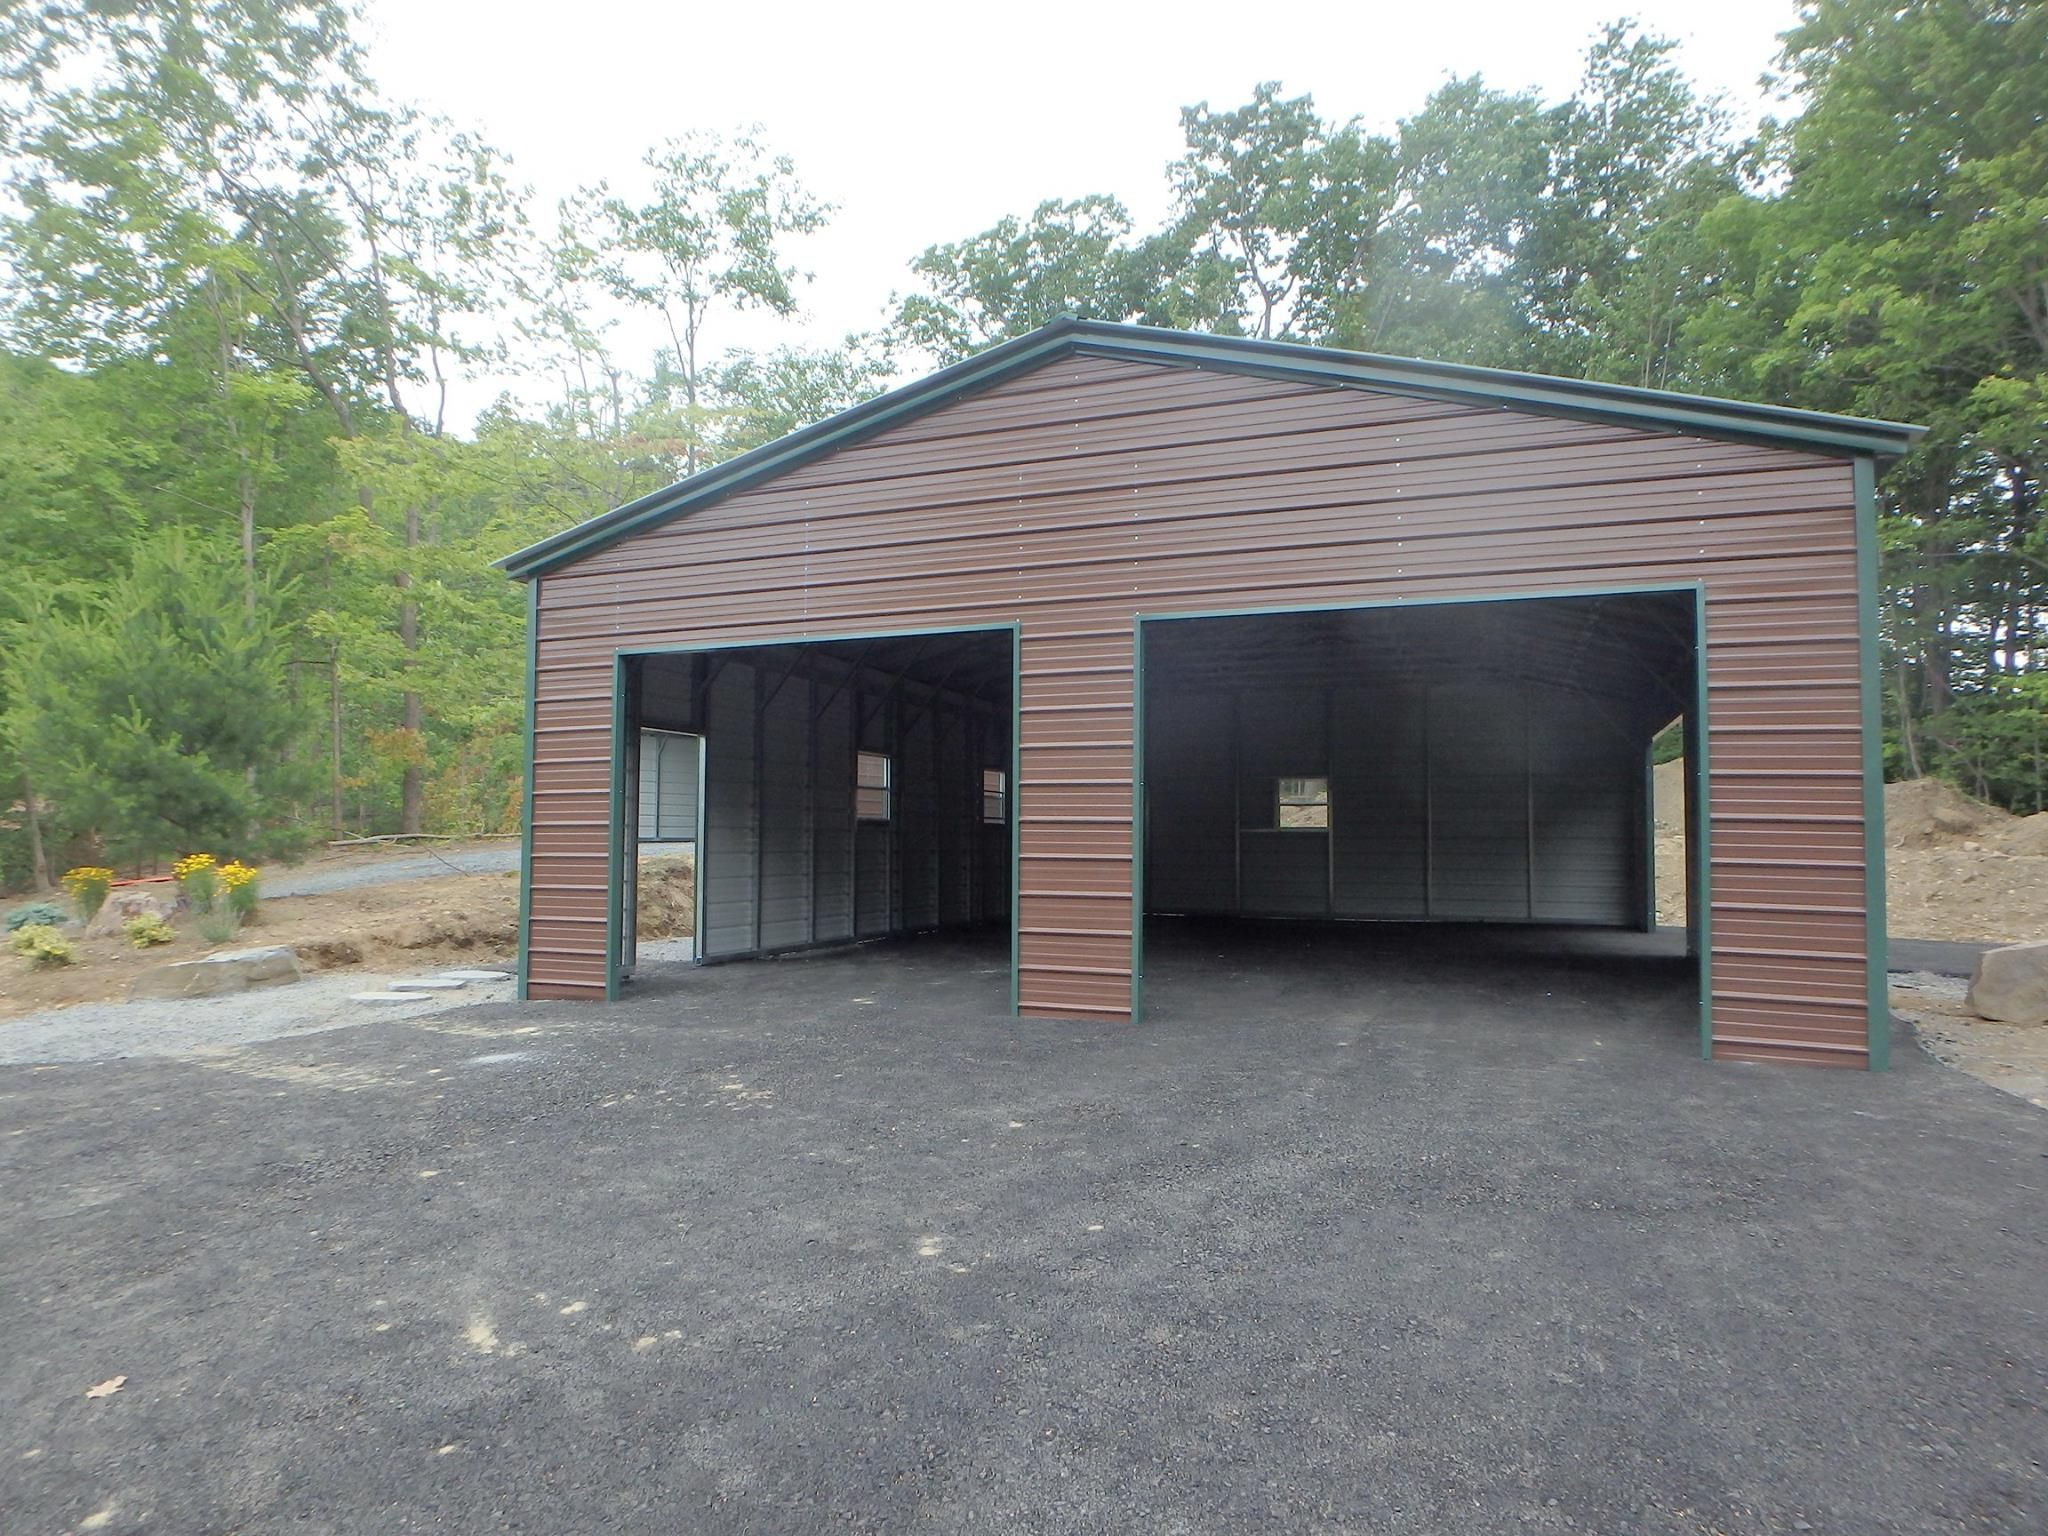 26 X 41 X 11 Vertical Roof Style Metal Workshop Building Features With 2 10x8 Roll Up Doors On Front End Wall 1 8x8 R Roof Styles Metal Workshop Roofing